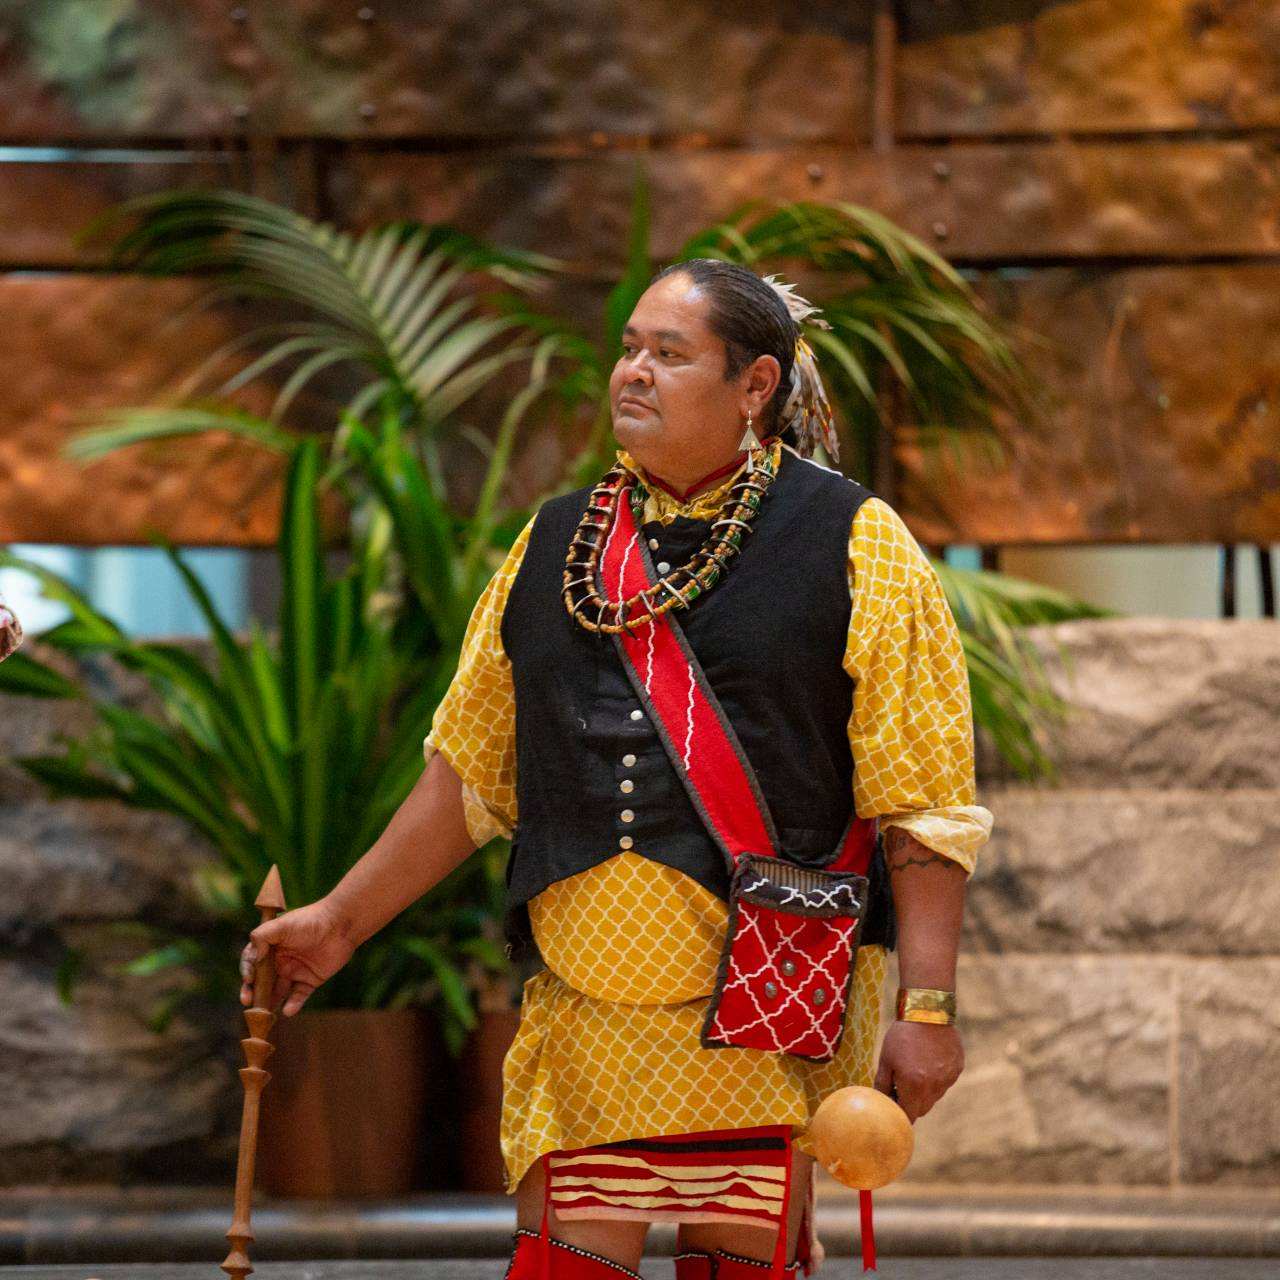 Cherokee Voices Festival: A Celebration of Cherokee Culture and